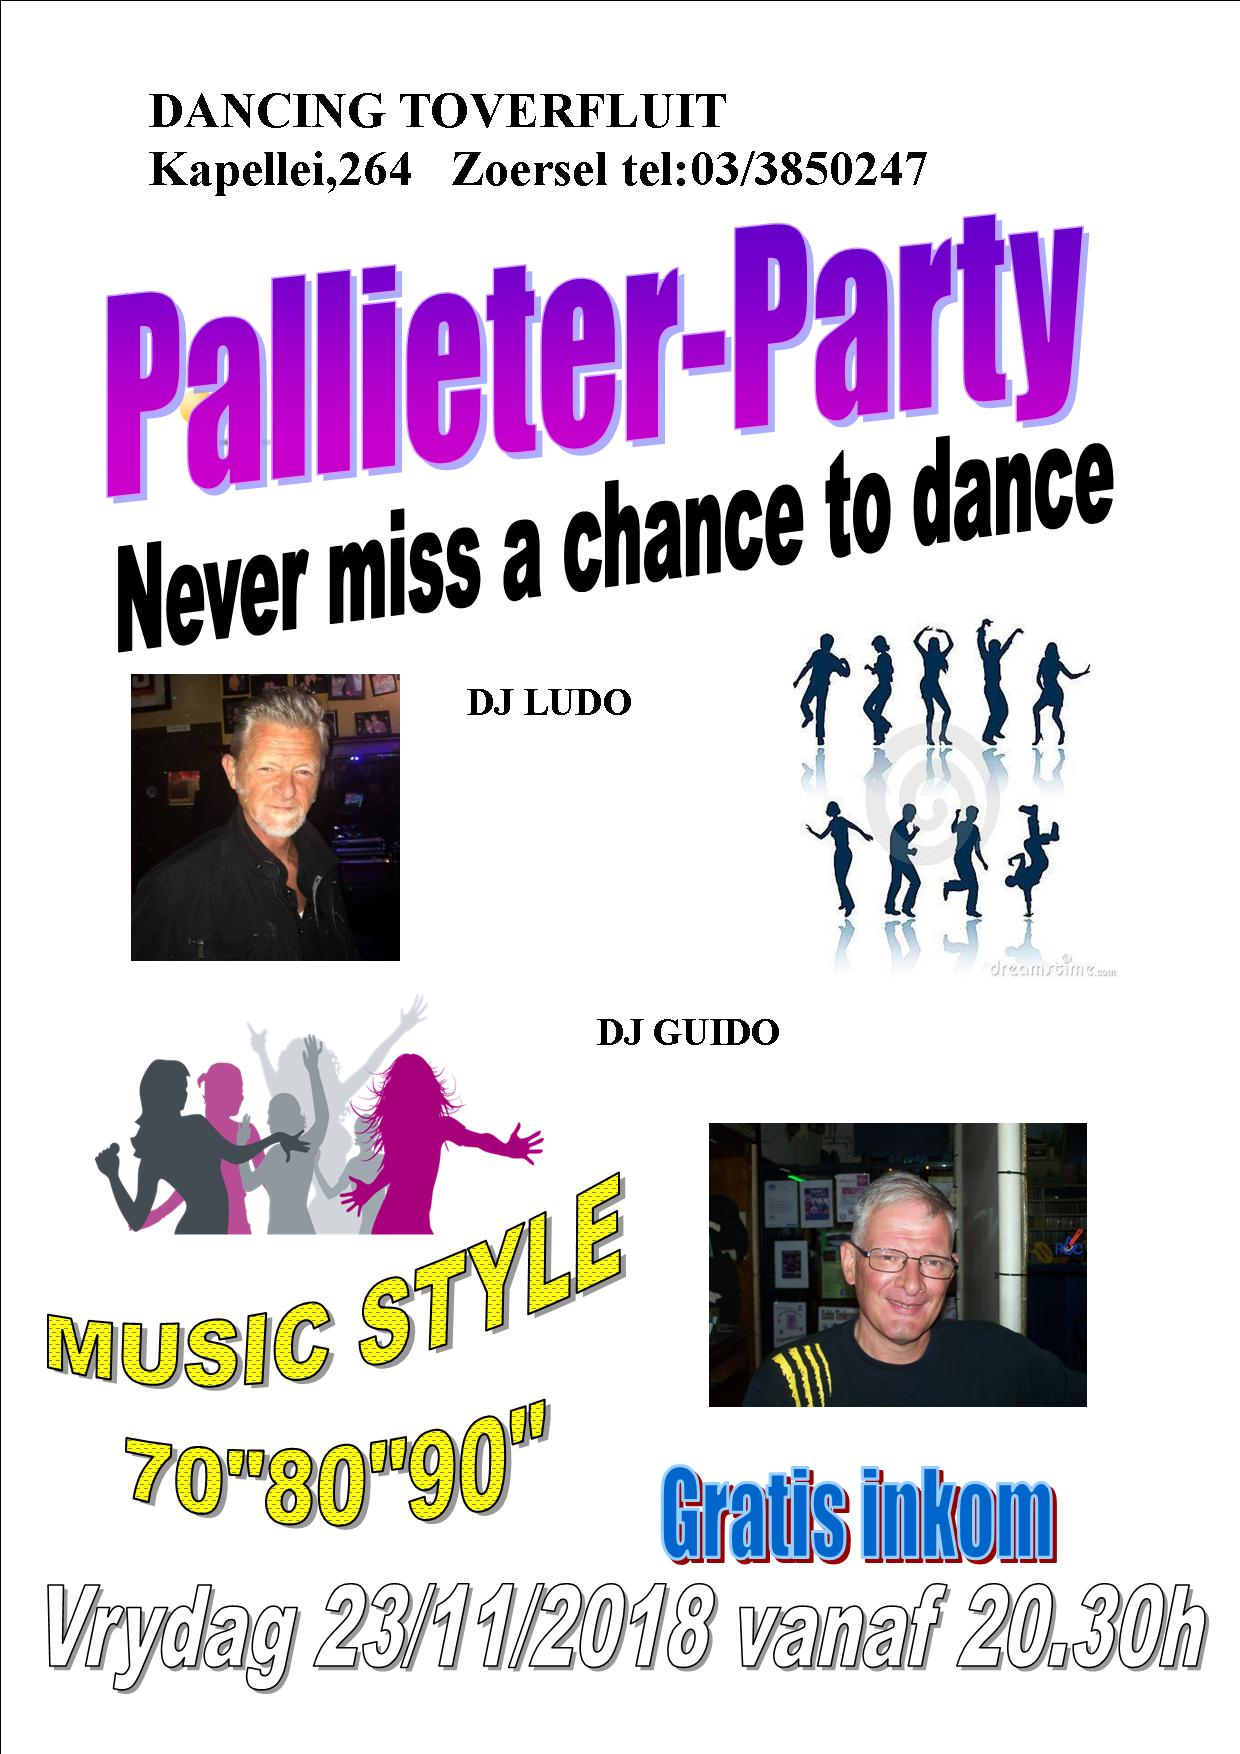 Pallieter Party affiche op 23/11/2018